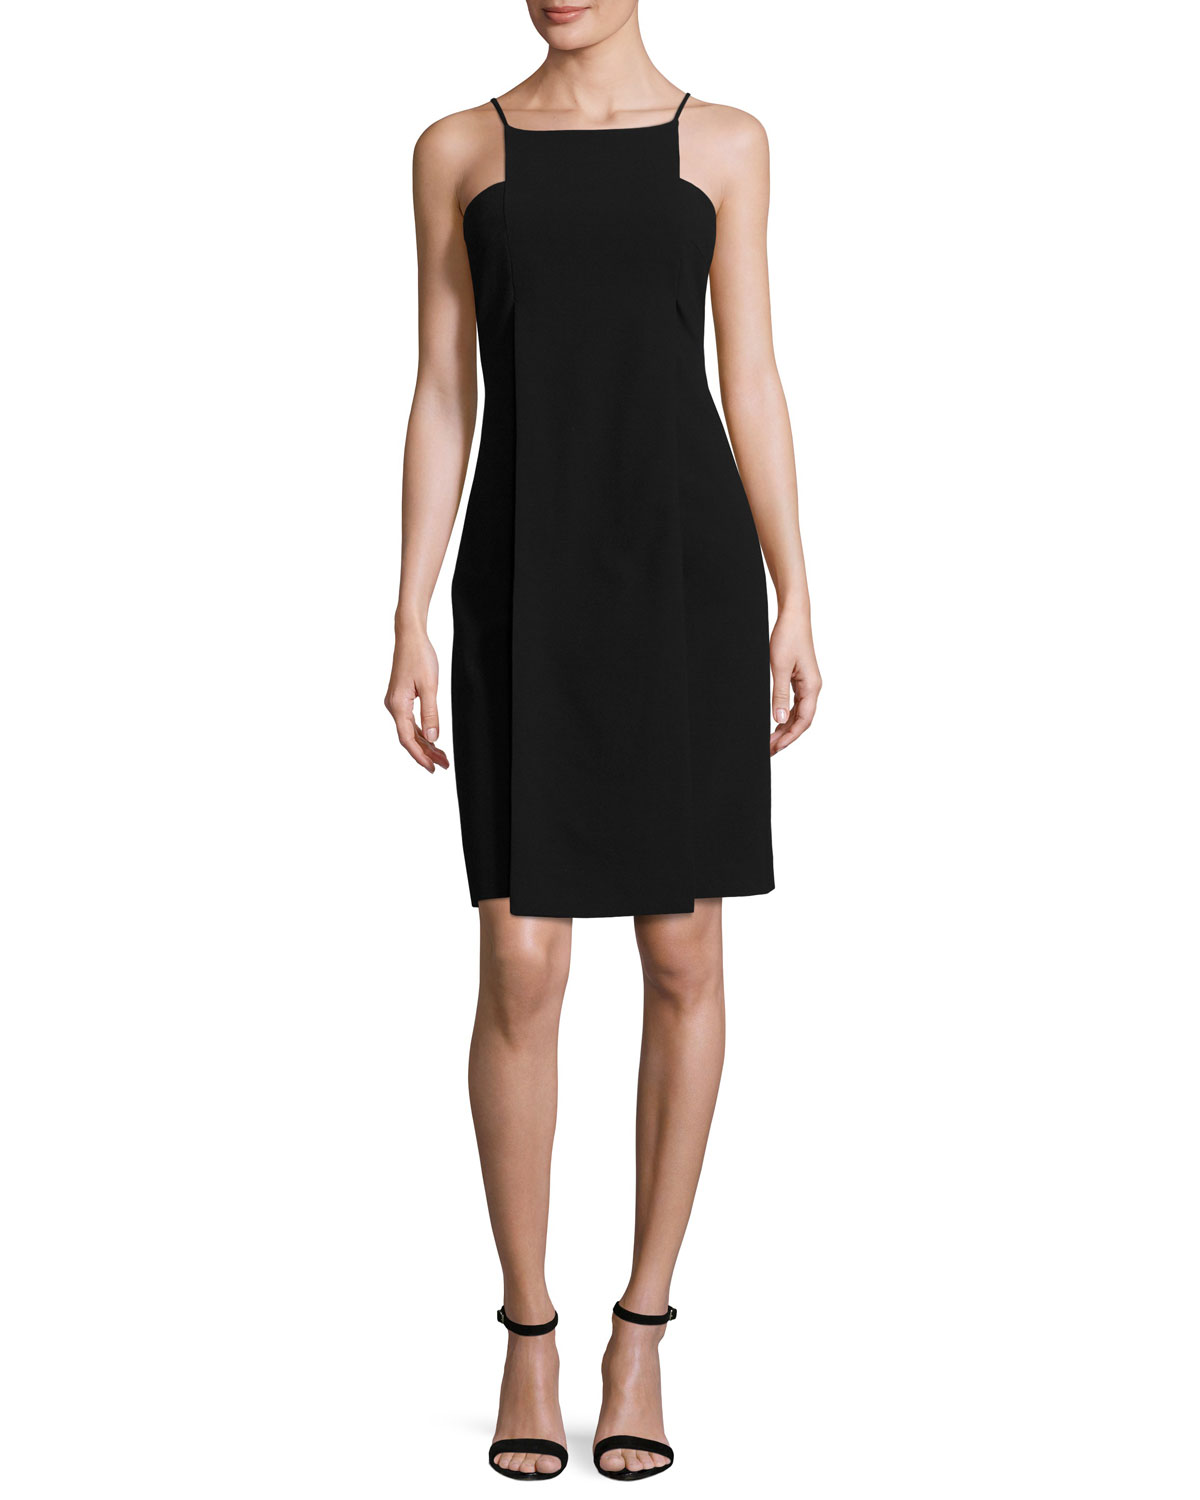 Sleeveless Paneled Cocktail Dress, Black